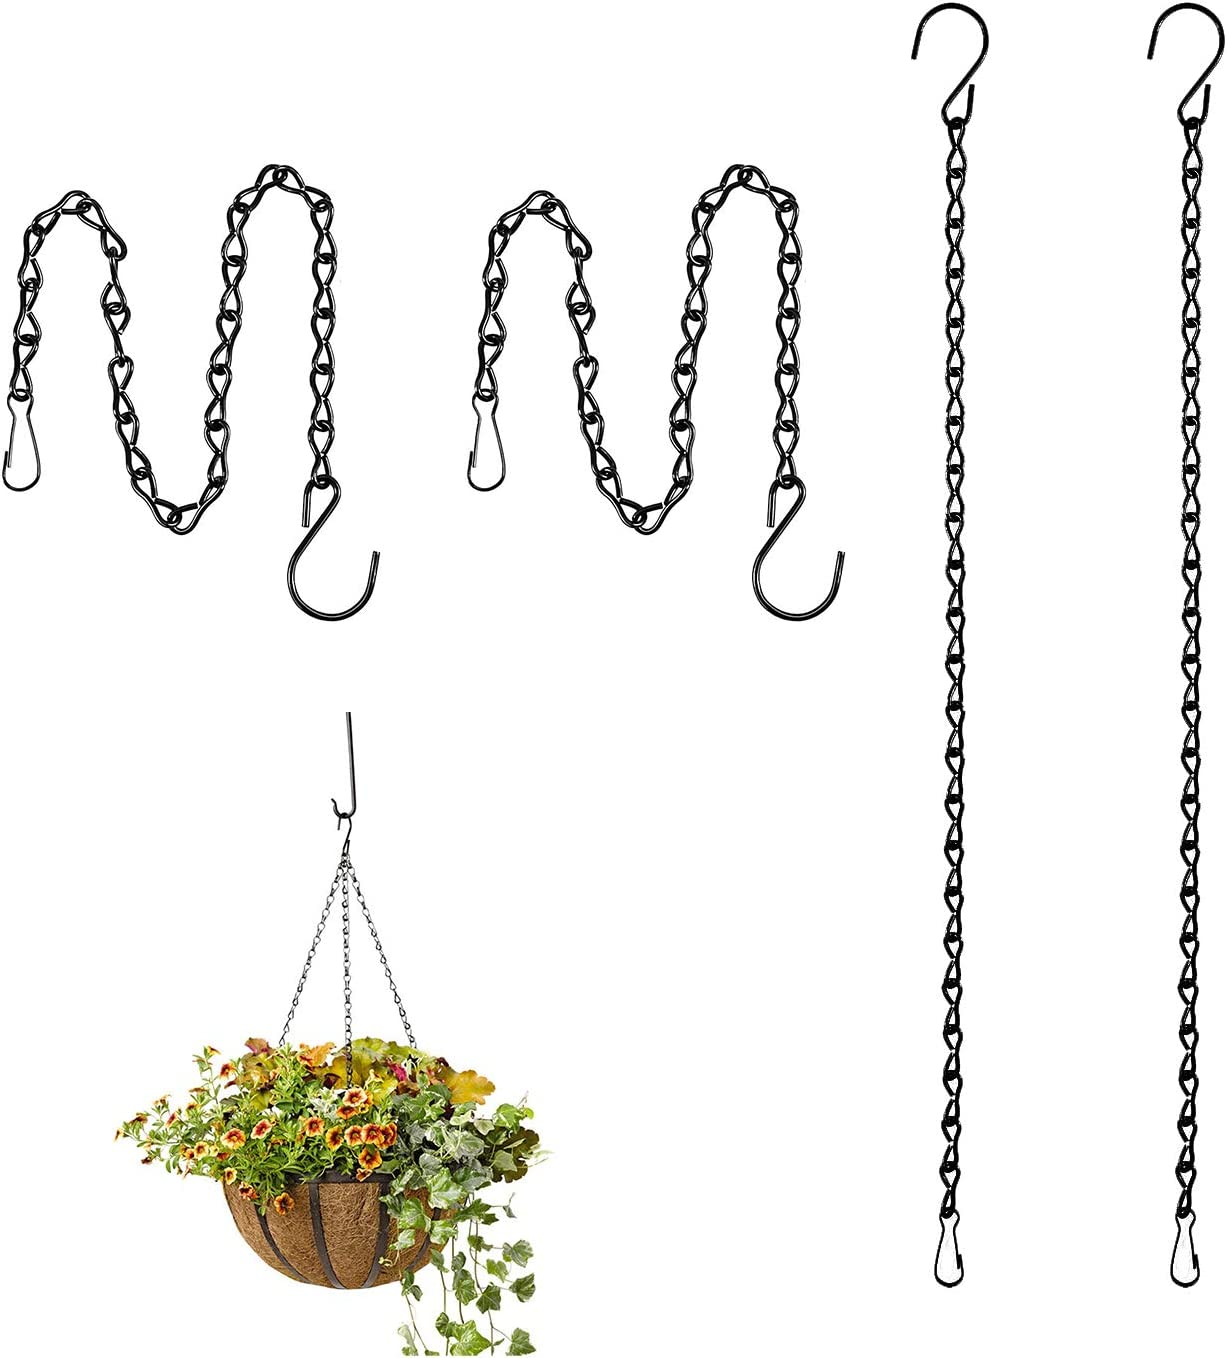 Lainrrew 4 Pcs Hanging Garden Max 61% OFF Plant Popular brand in the world Flowe Chains